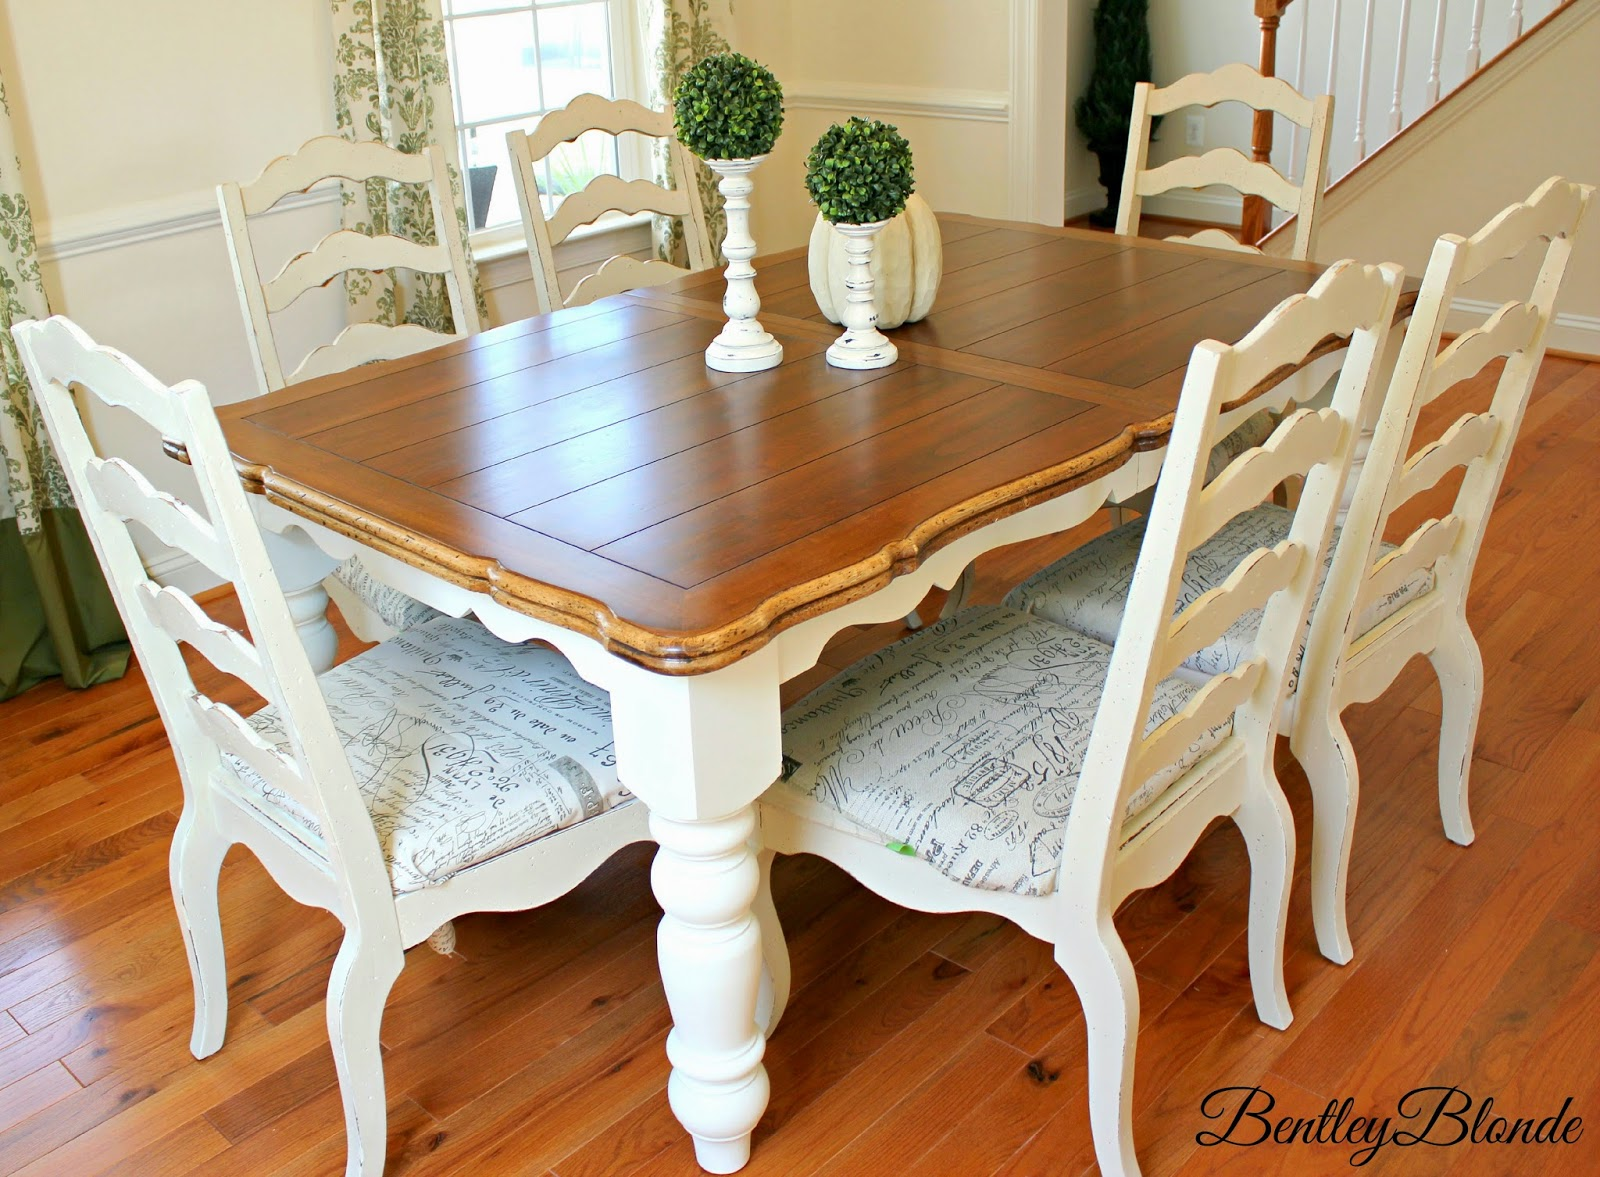 farm house chairs casters for on hardwood floors bentleyblonde diy farmhouse table and dining set makeover